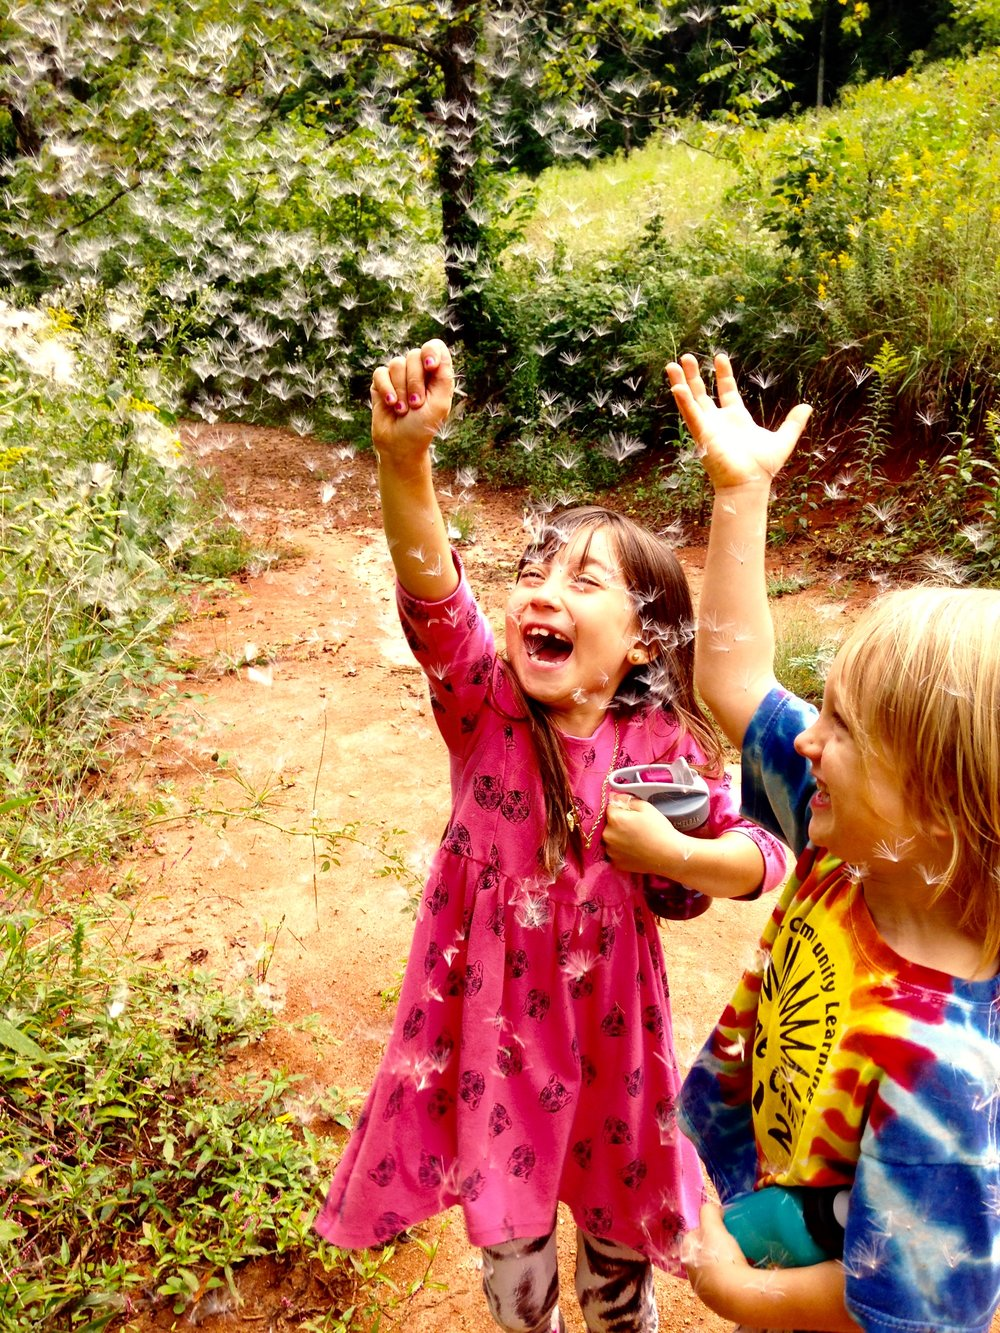 The 'out-breath' of outdoor play- chasing 'starseeds' carried far and wide by the breeze.